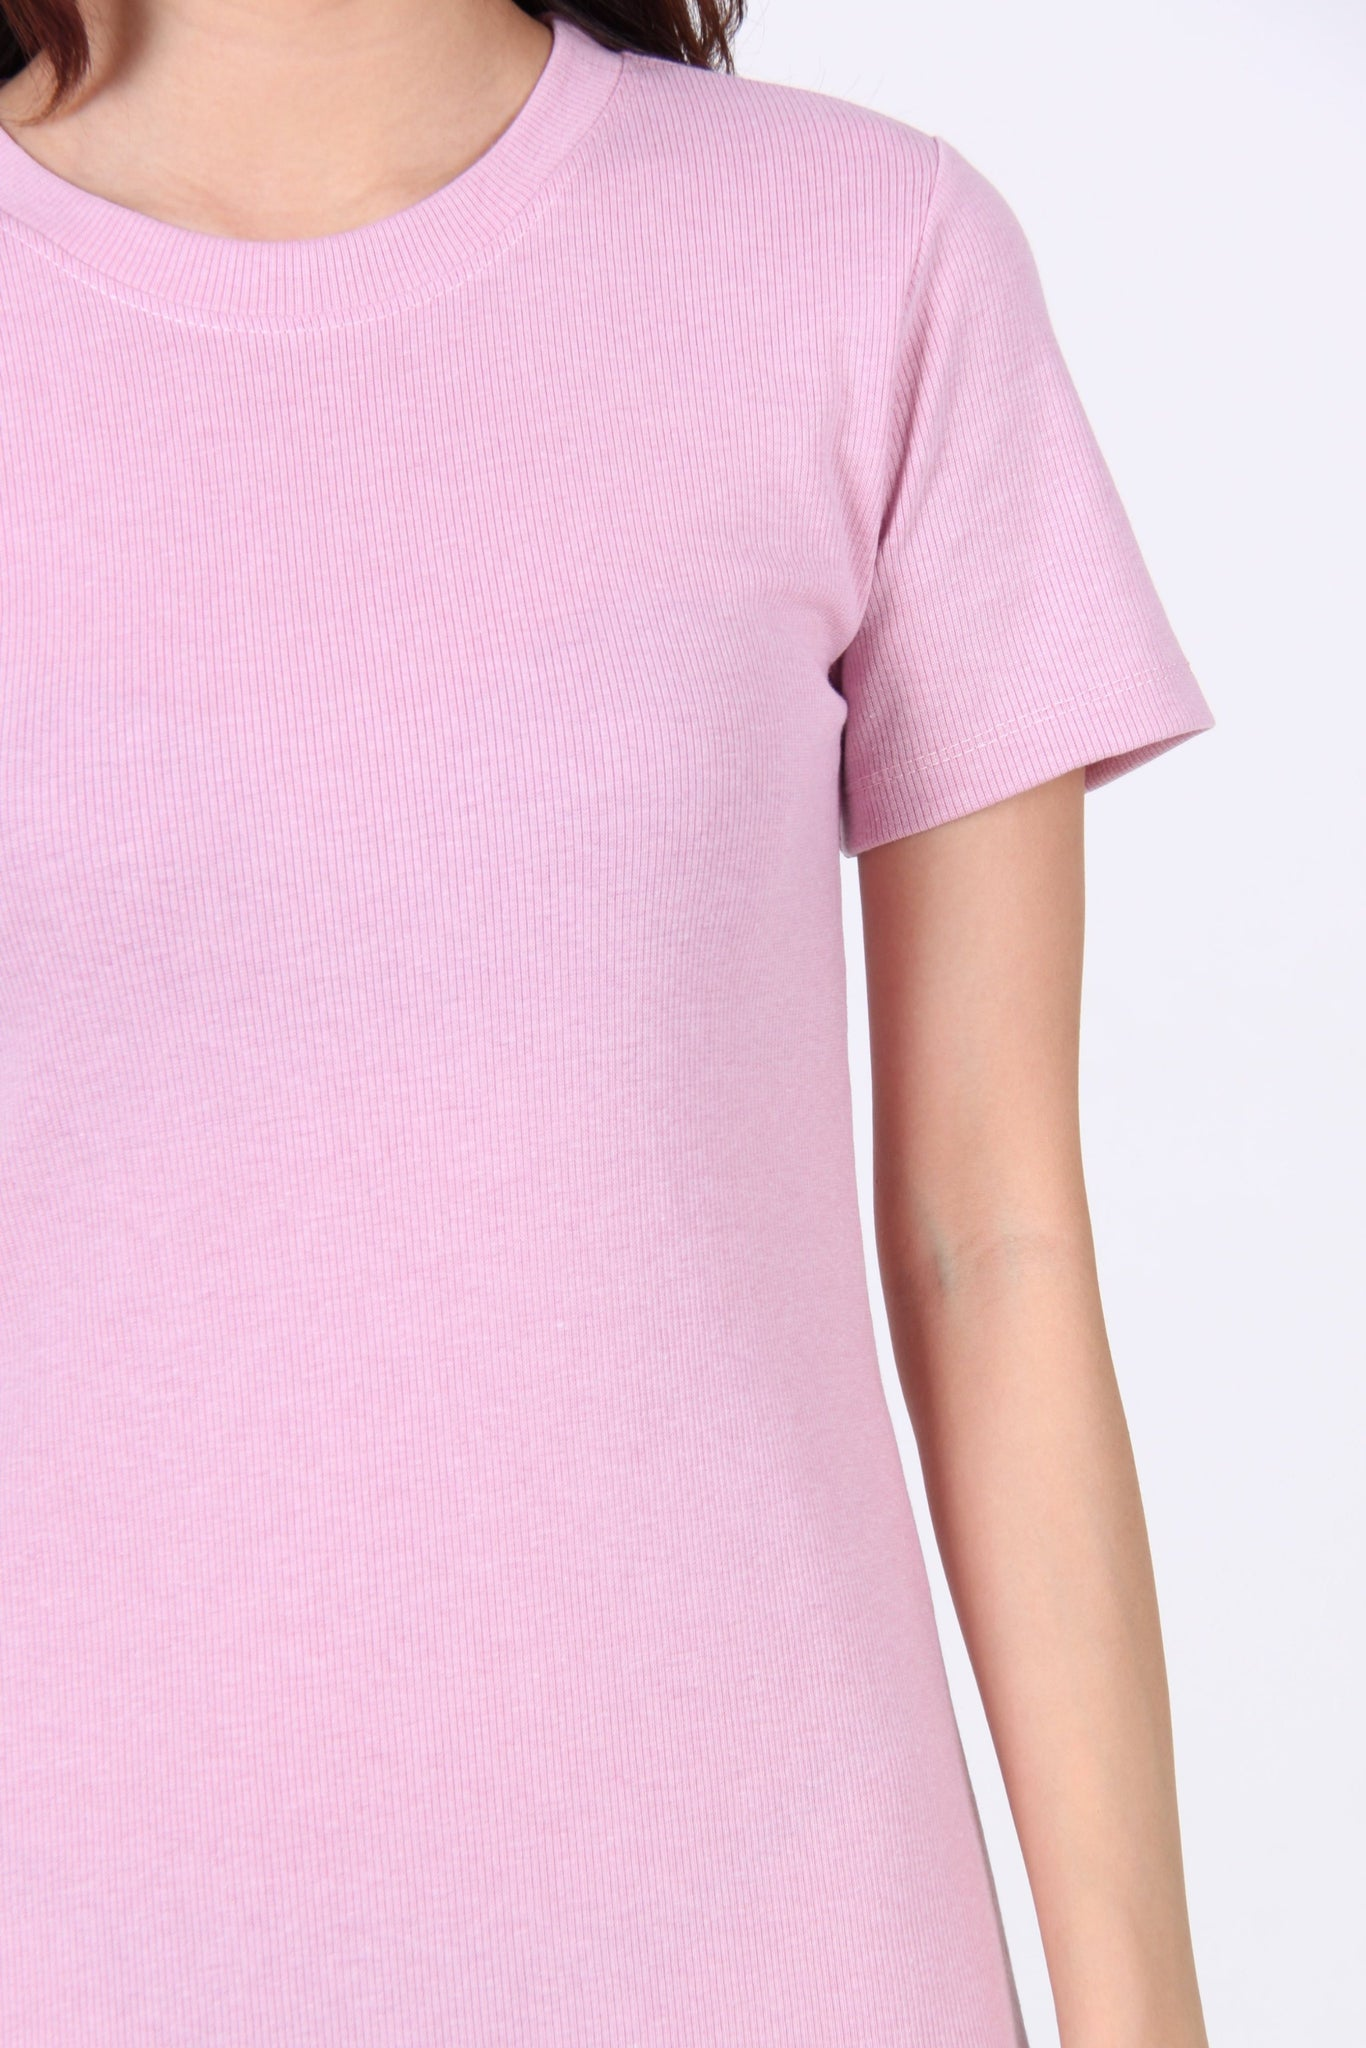 Basic Everyday Comfy Tee Dress in Pink